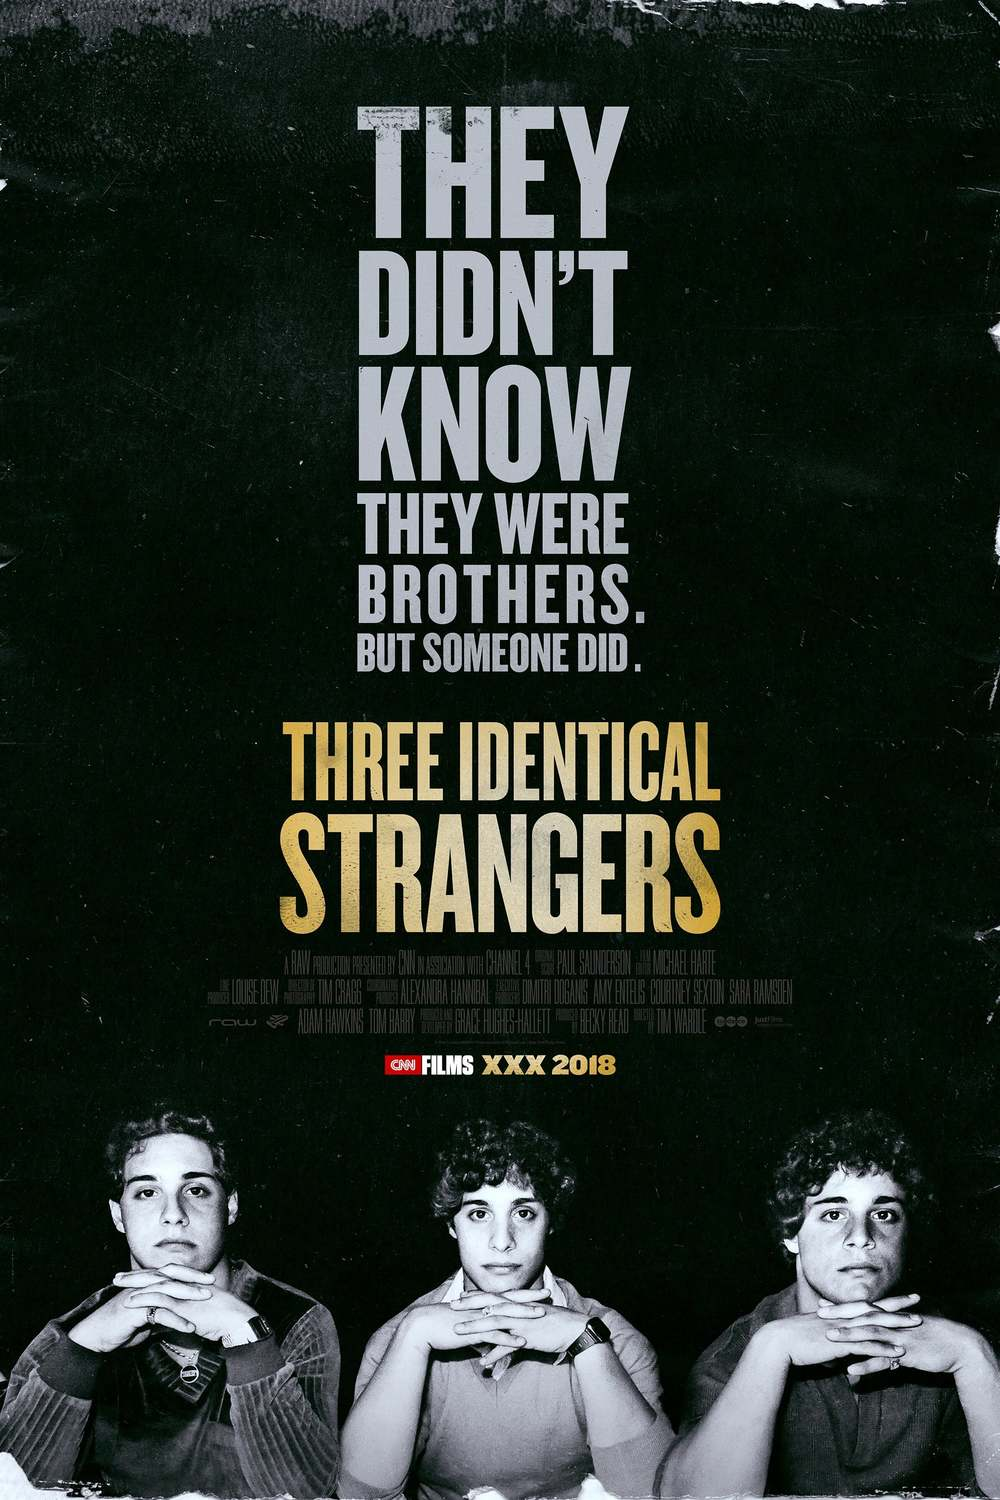 Three Identical Strangers DVD Release Date | Redbox, Netflix, iTunes, Amazon